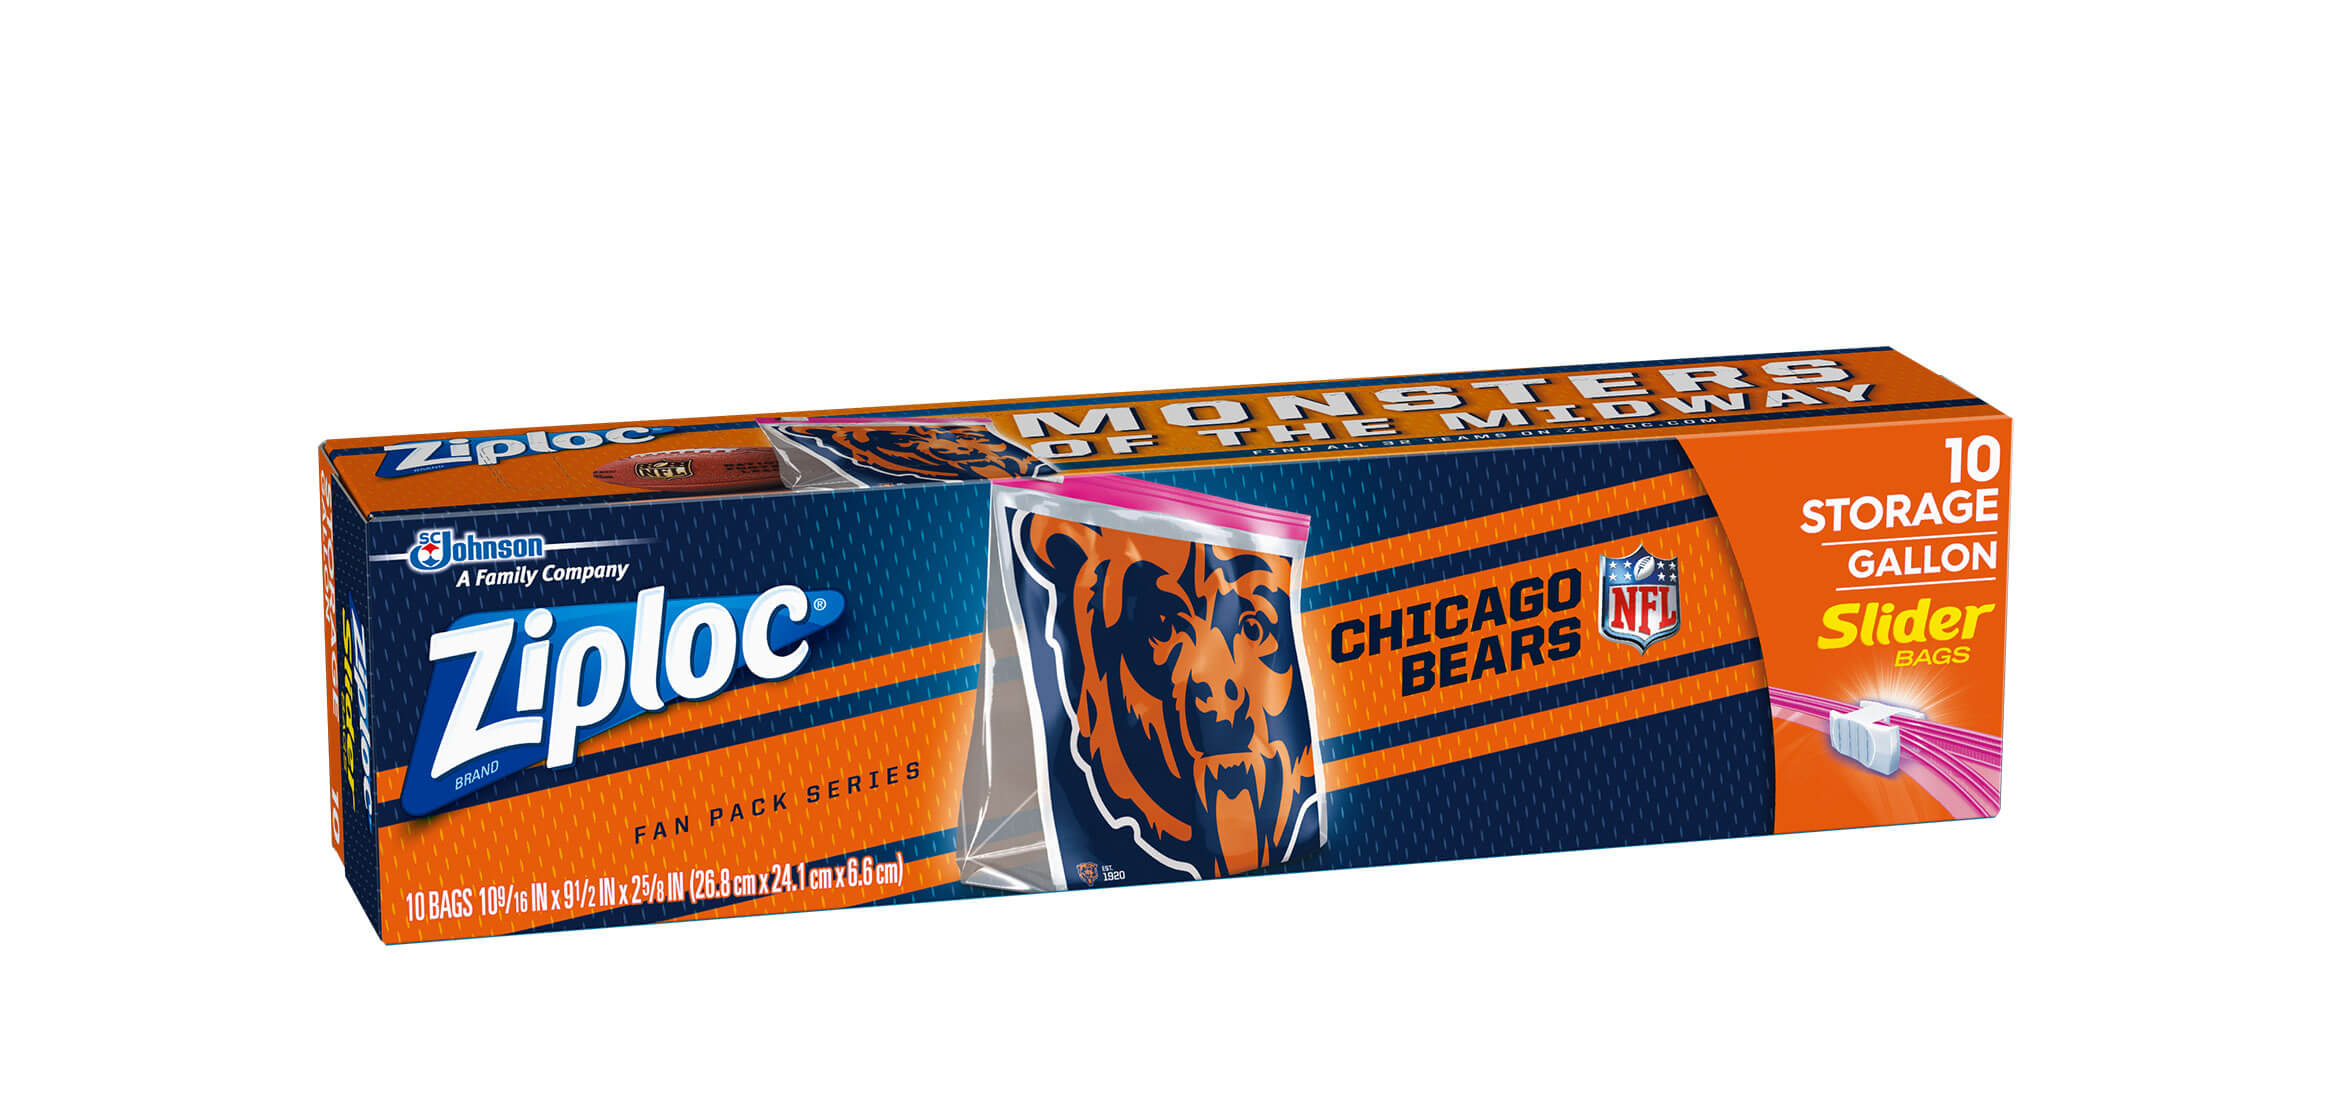 Chicago-Bears-Slider-Storage-Gallon-Angle-2X